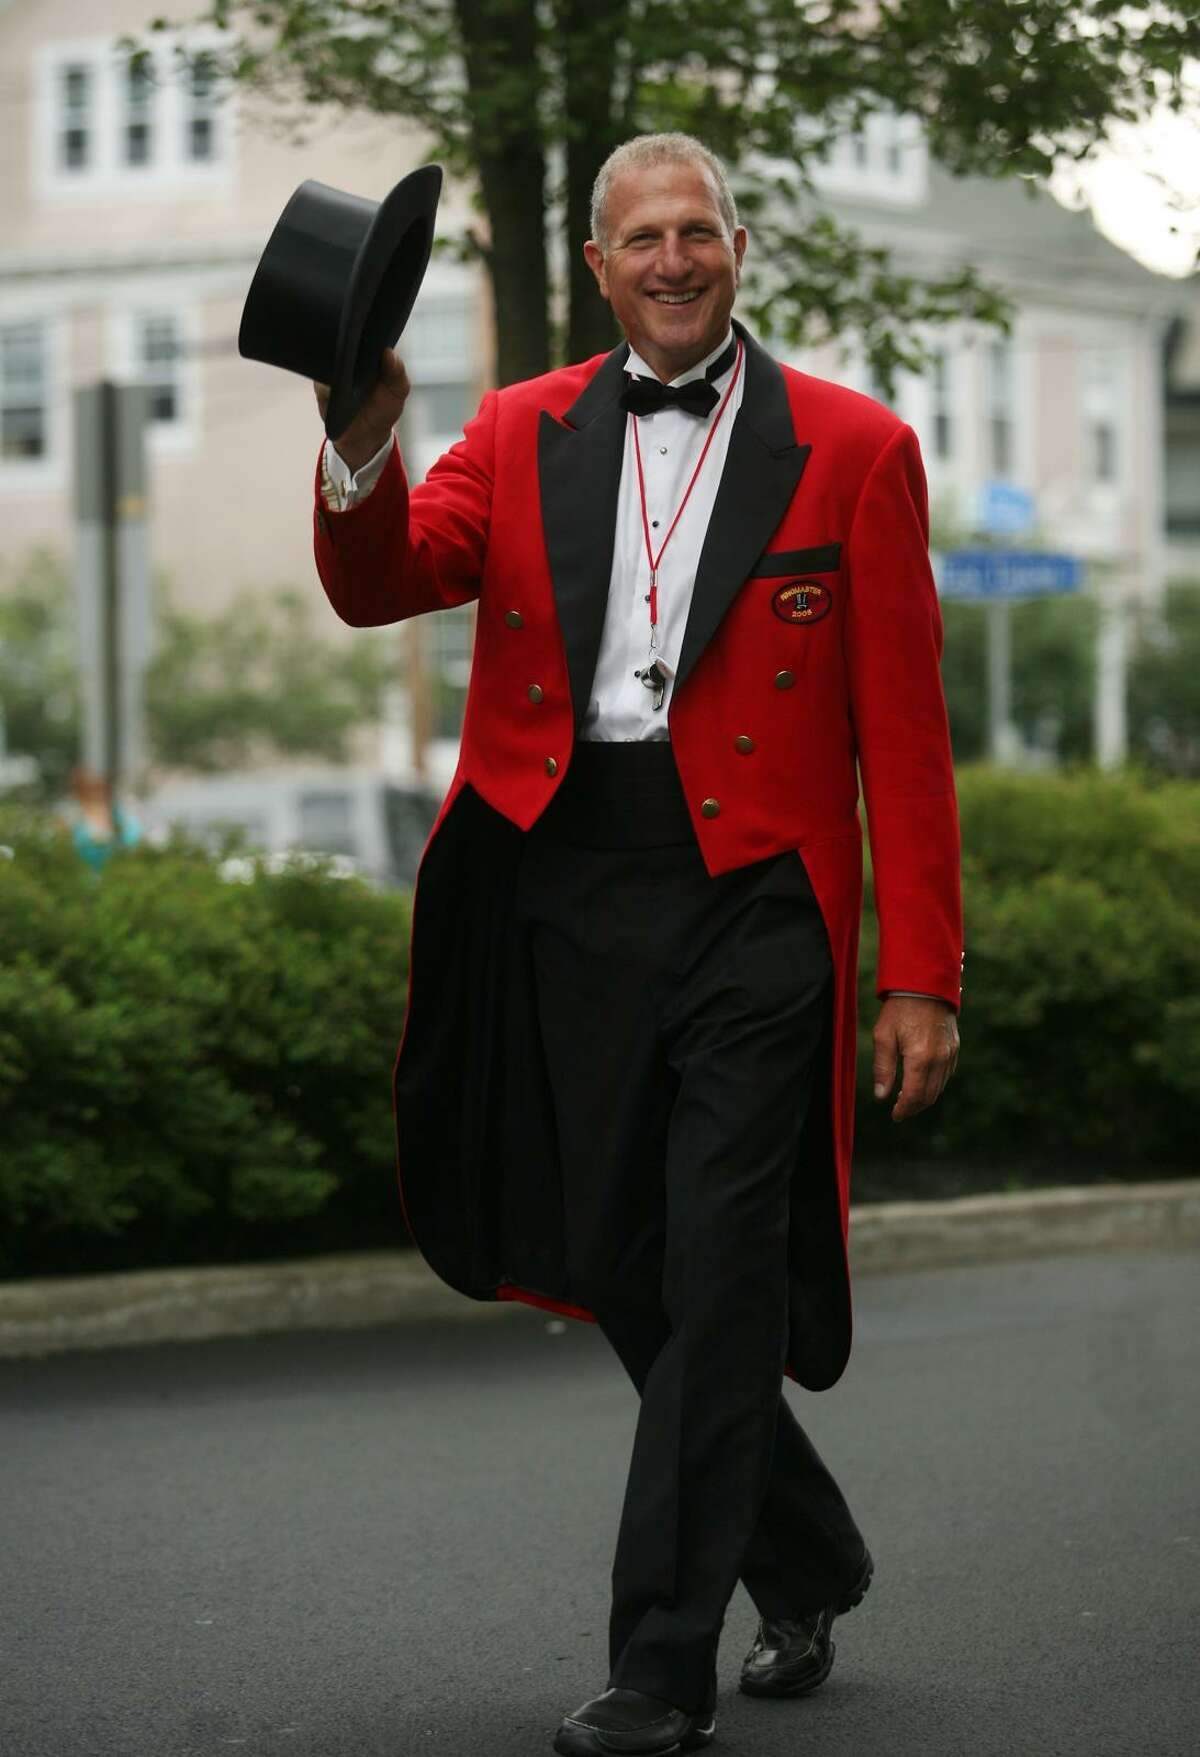 Shelton Mayor and 2008 Barnum Festival Ringmaster Mark Lauretti dons his red jacket again to march in the 2011 parade.